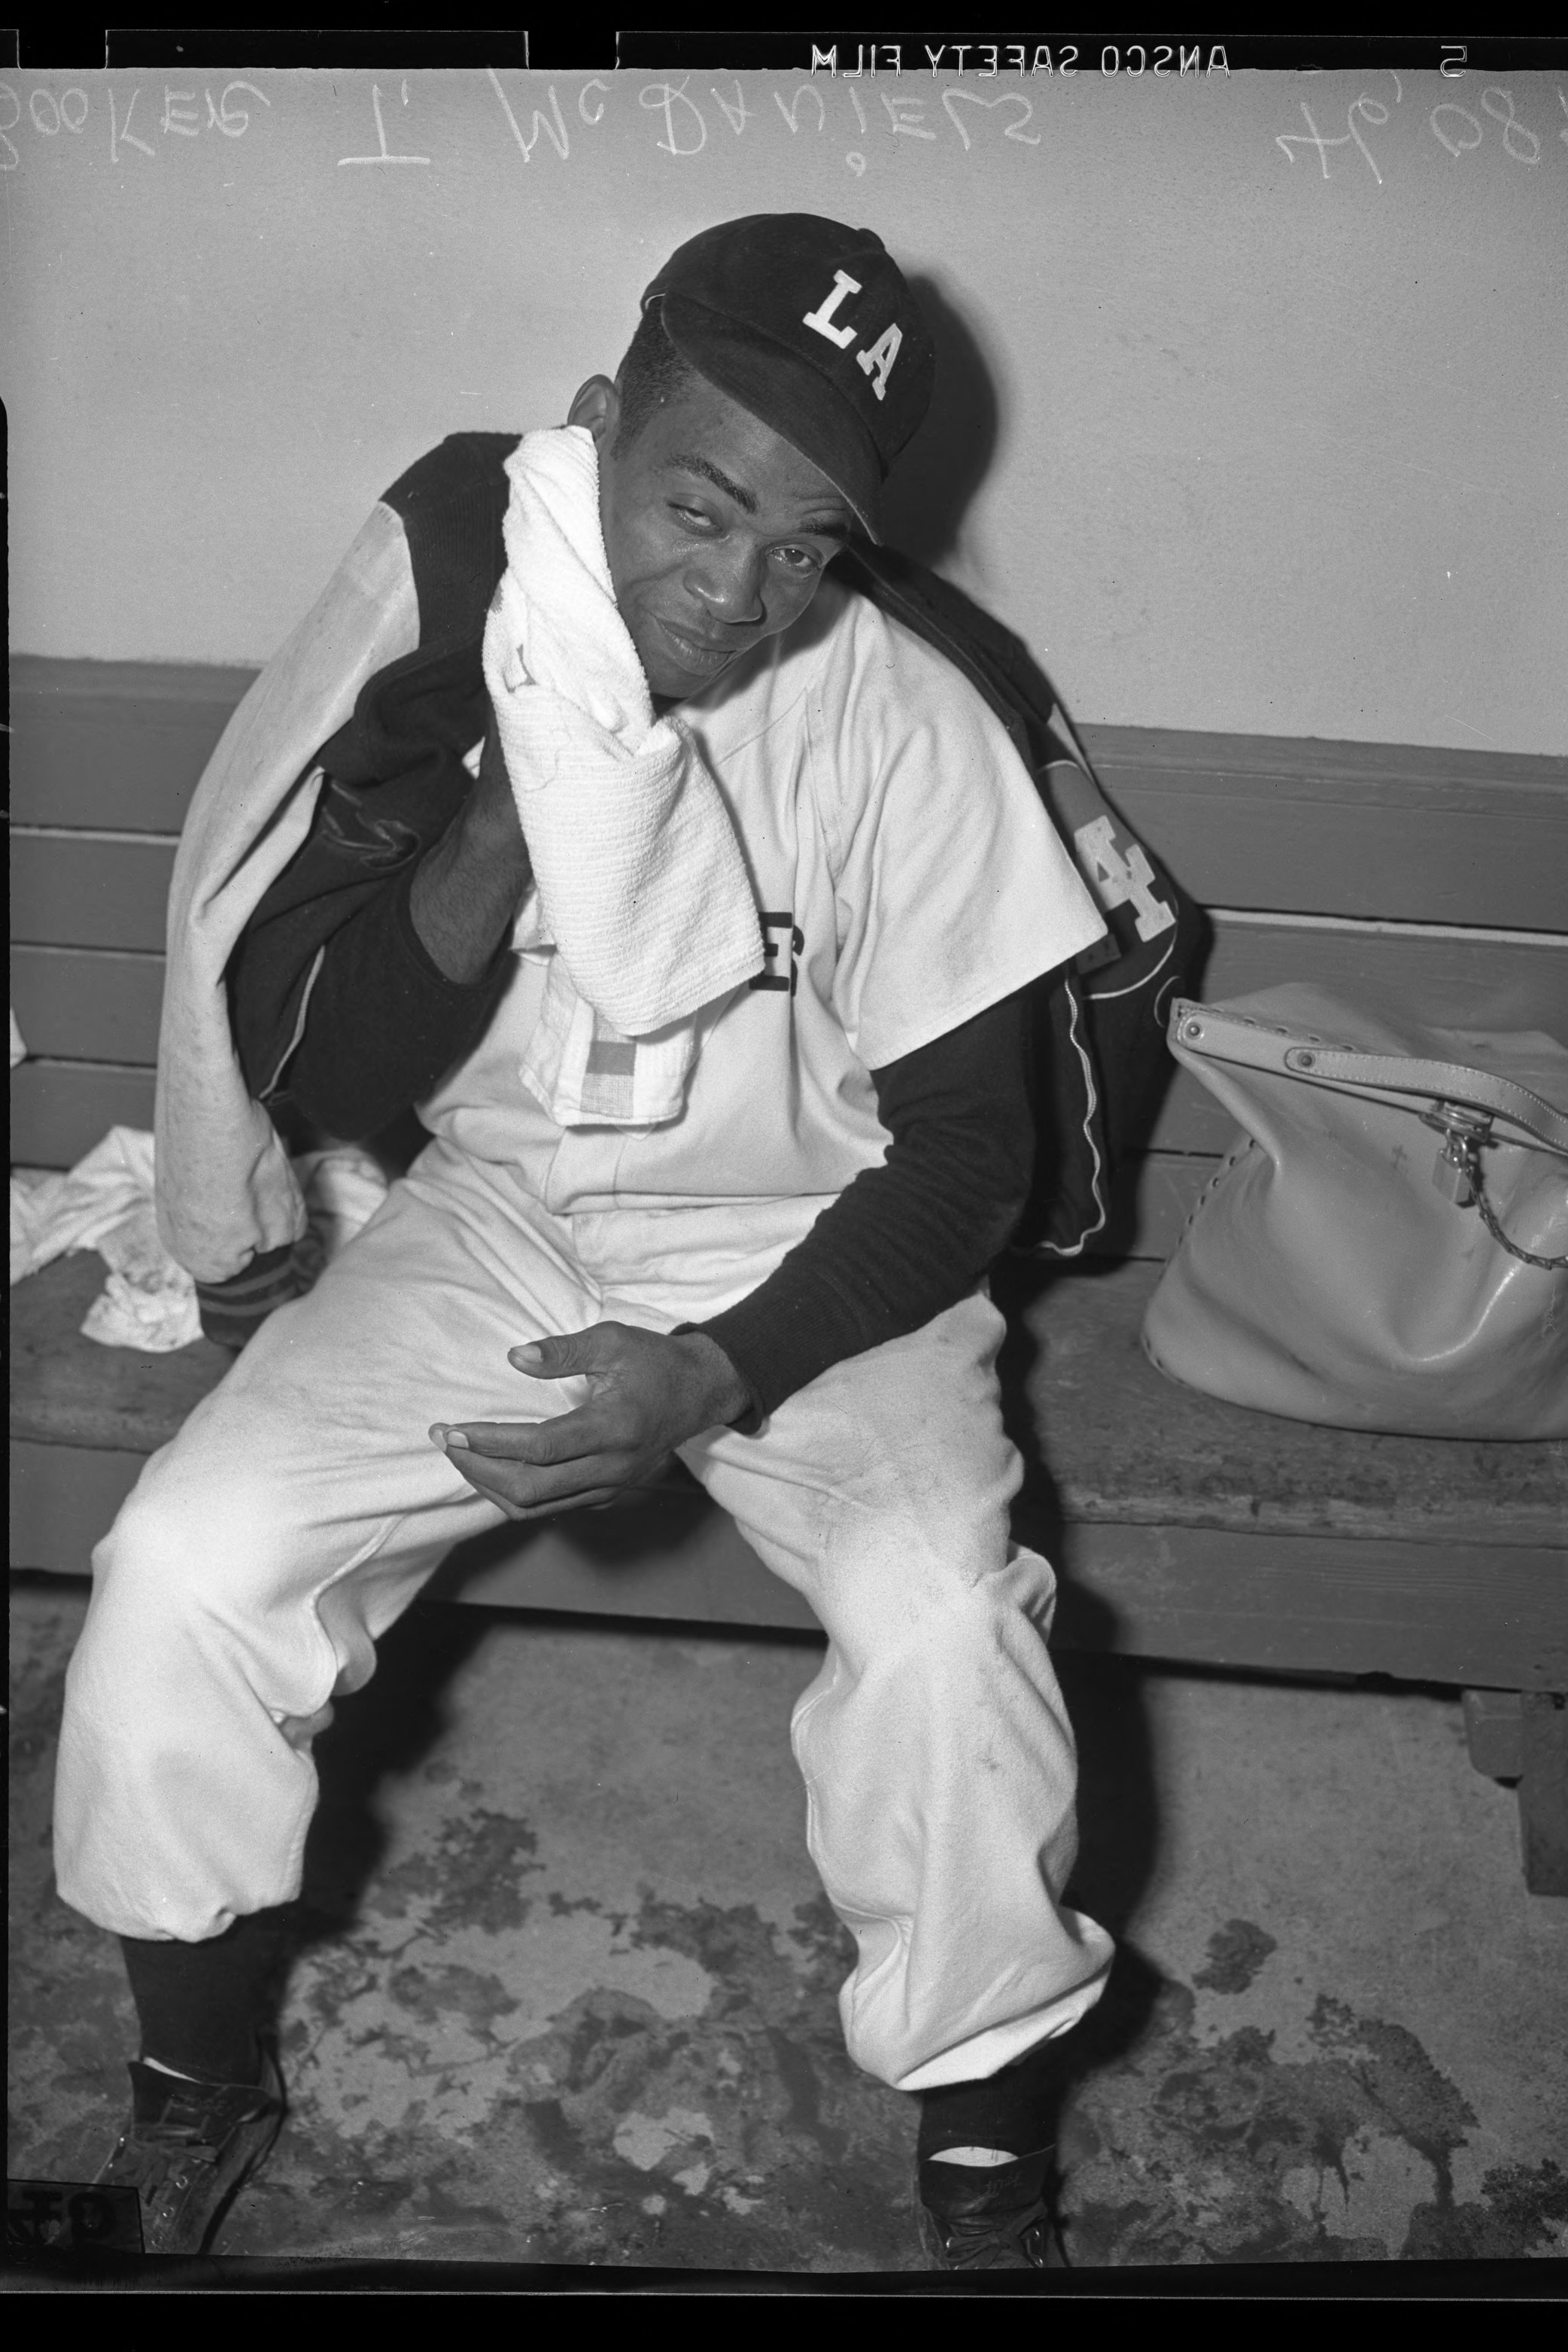 While Jackie Robinson broke baseball's color barrier with the Brooklyn Dodgers on the east coast in 1947, the Pacific Coast League also began to integrate that same year. Two years later, Booker McDaniels, pictured here, was signed as a pitcher for the Los Angeles Angels. Image via UCLA Library Special Collections (1949).